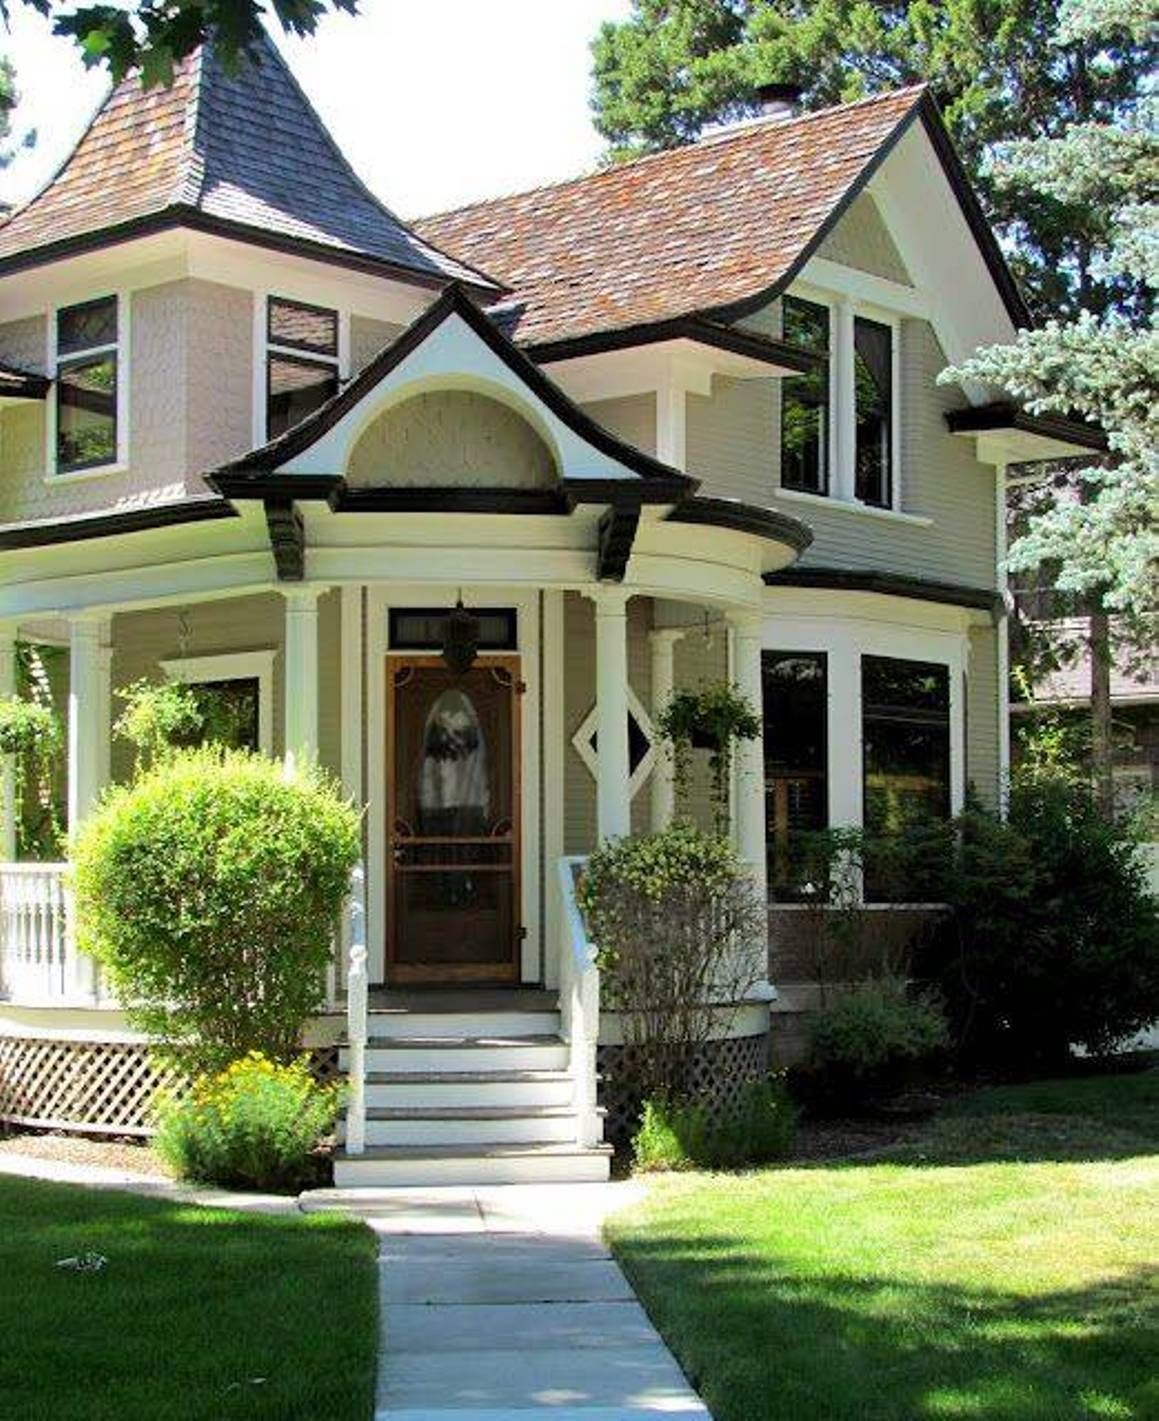 Neutral house colors exterior google search house for Exterior paint colors for house